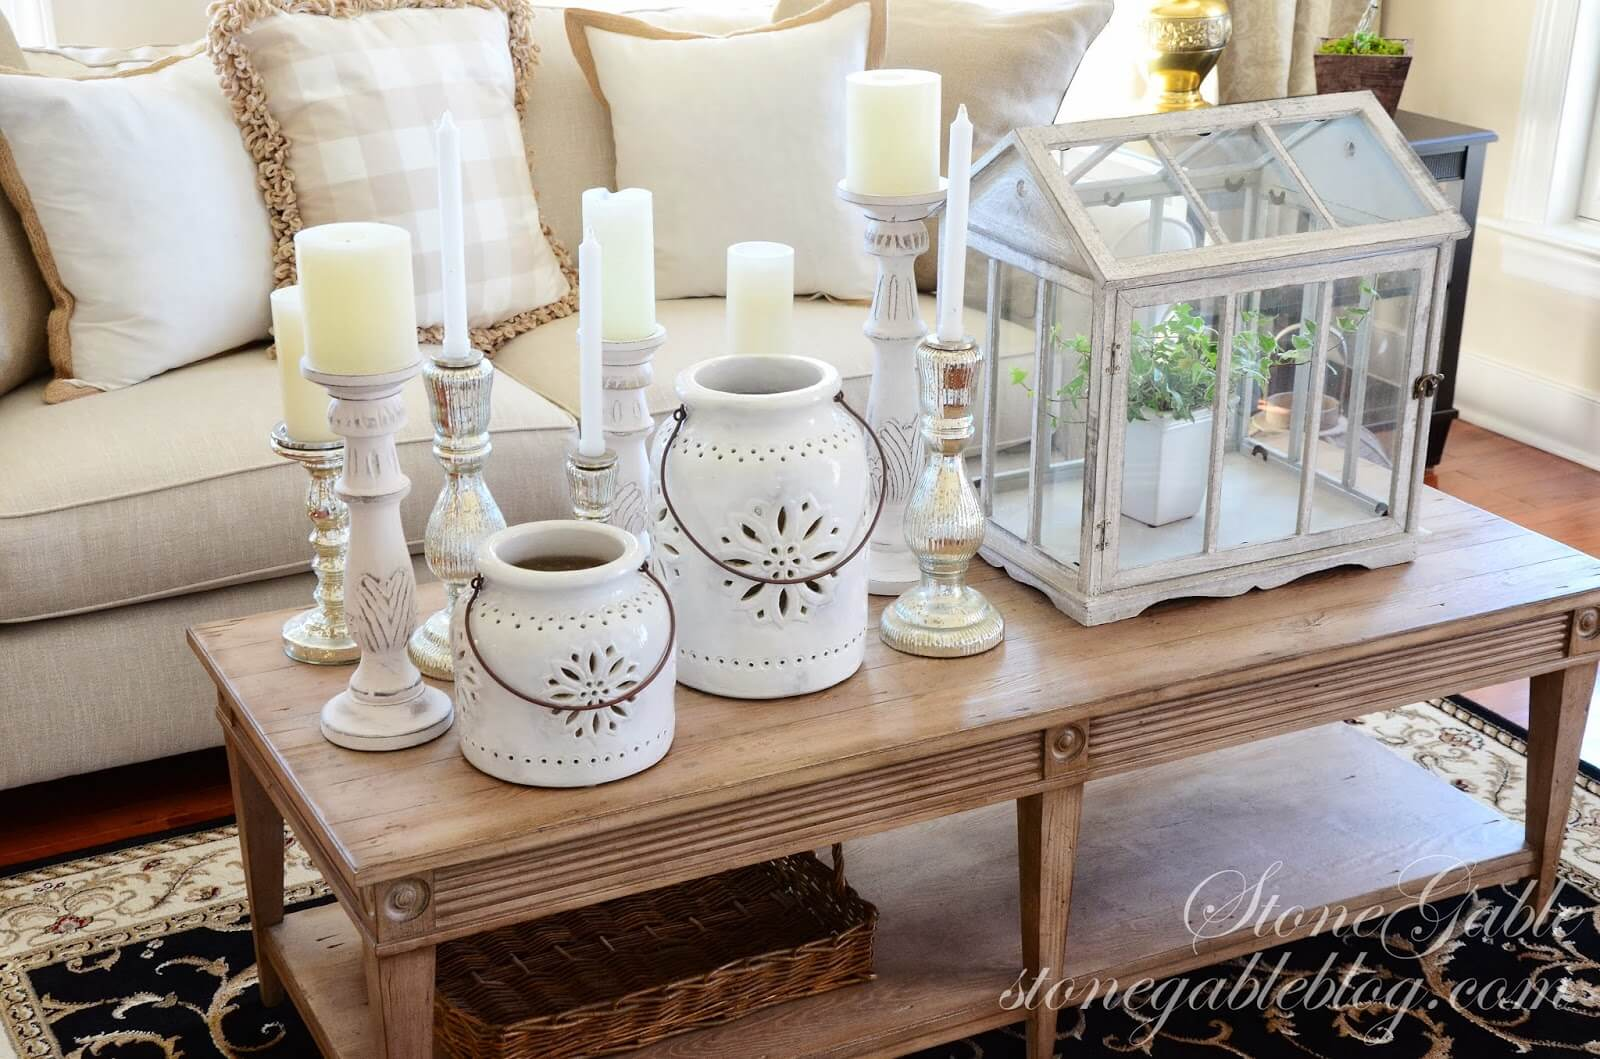 Victorian Greenhouse Terrarium and Mismatched Candle Display